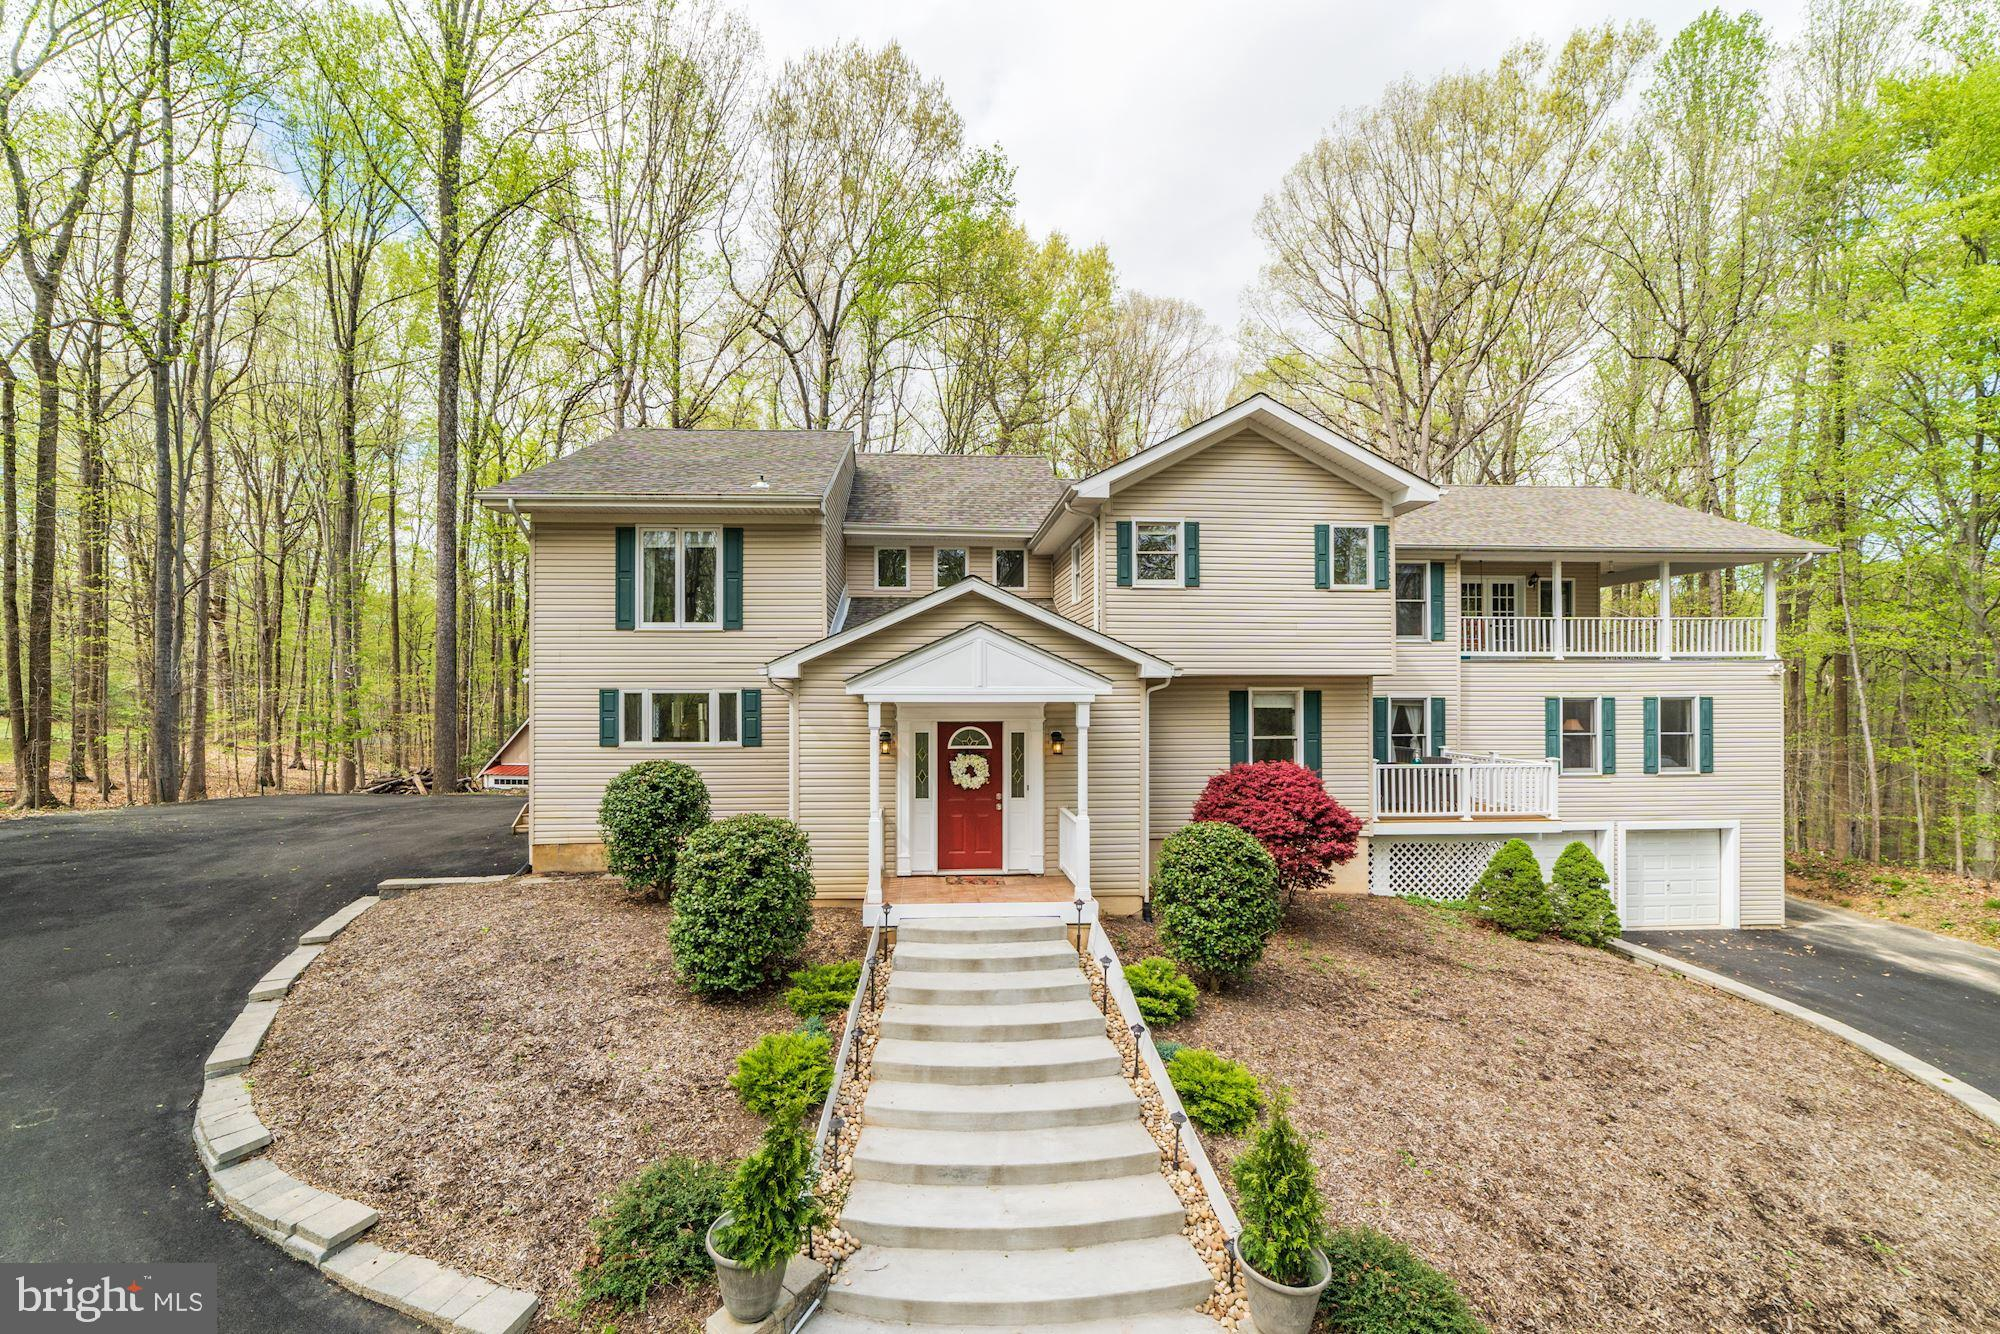 A piece of the country in the heart of the suburbs - Don't miss this GEM! Custom 6 BR, 6 BA home nestled among 2 acres of gorgeous wooded privacy. Open concept 1st floor living space includes cozy reading room w/ fireplace, remodeled kitchen w/ stainless steel appliances, granite counters, and hardwood bar counter. Library/office w/ private deck. 2 Master suites, perfect for in-law or au pair. Expansive owner suite w/ large separated sitting room, master bath w/ jacuzzi tub, his & her walk-in closets, and laundry room! Stunning views from the bedroom private 3-sided wrap-around porch! Property has freshly-paved wrap-around driveway, two sheds (1 w/ chicken coop), hardscape firepit, and countless mature hardwoods/evergreens. 3-car garage, separate indoor workshop, new roof, gutter-guards, & newer HVAC. This home is zoned for the county newest Elementary school opening August 2019. Conveniently located 10 minutes from Potomac Mills Mall and interstate 95. Endless custom features throughout (even a secret bookcase door!). A MUST SEE!